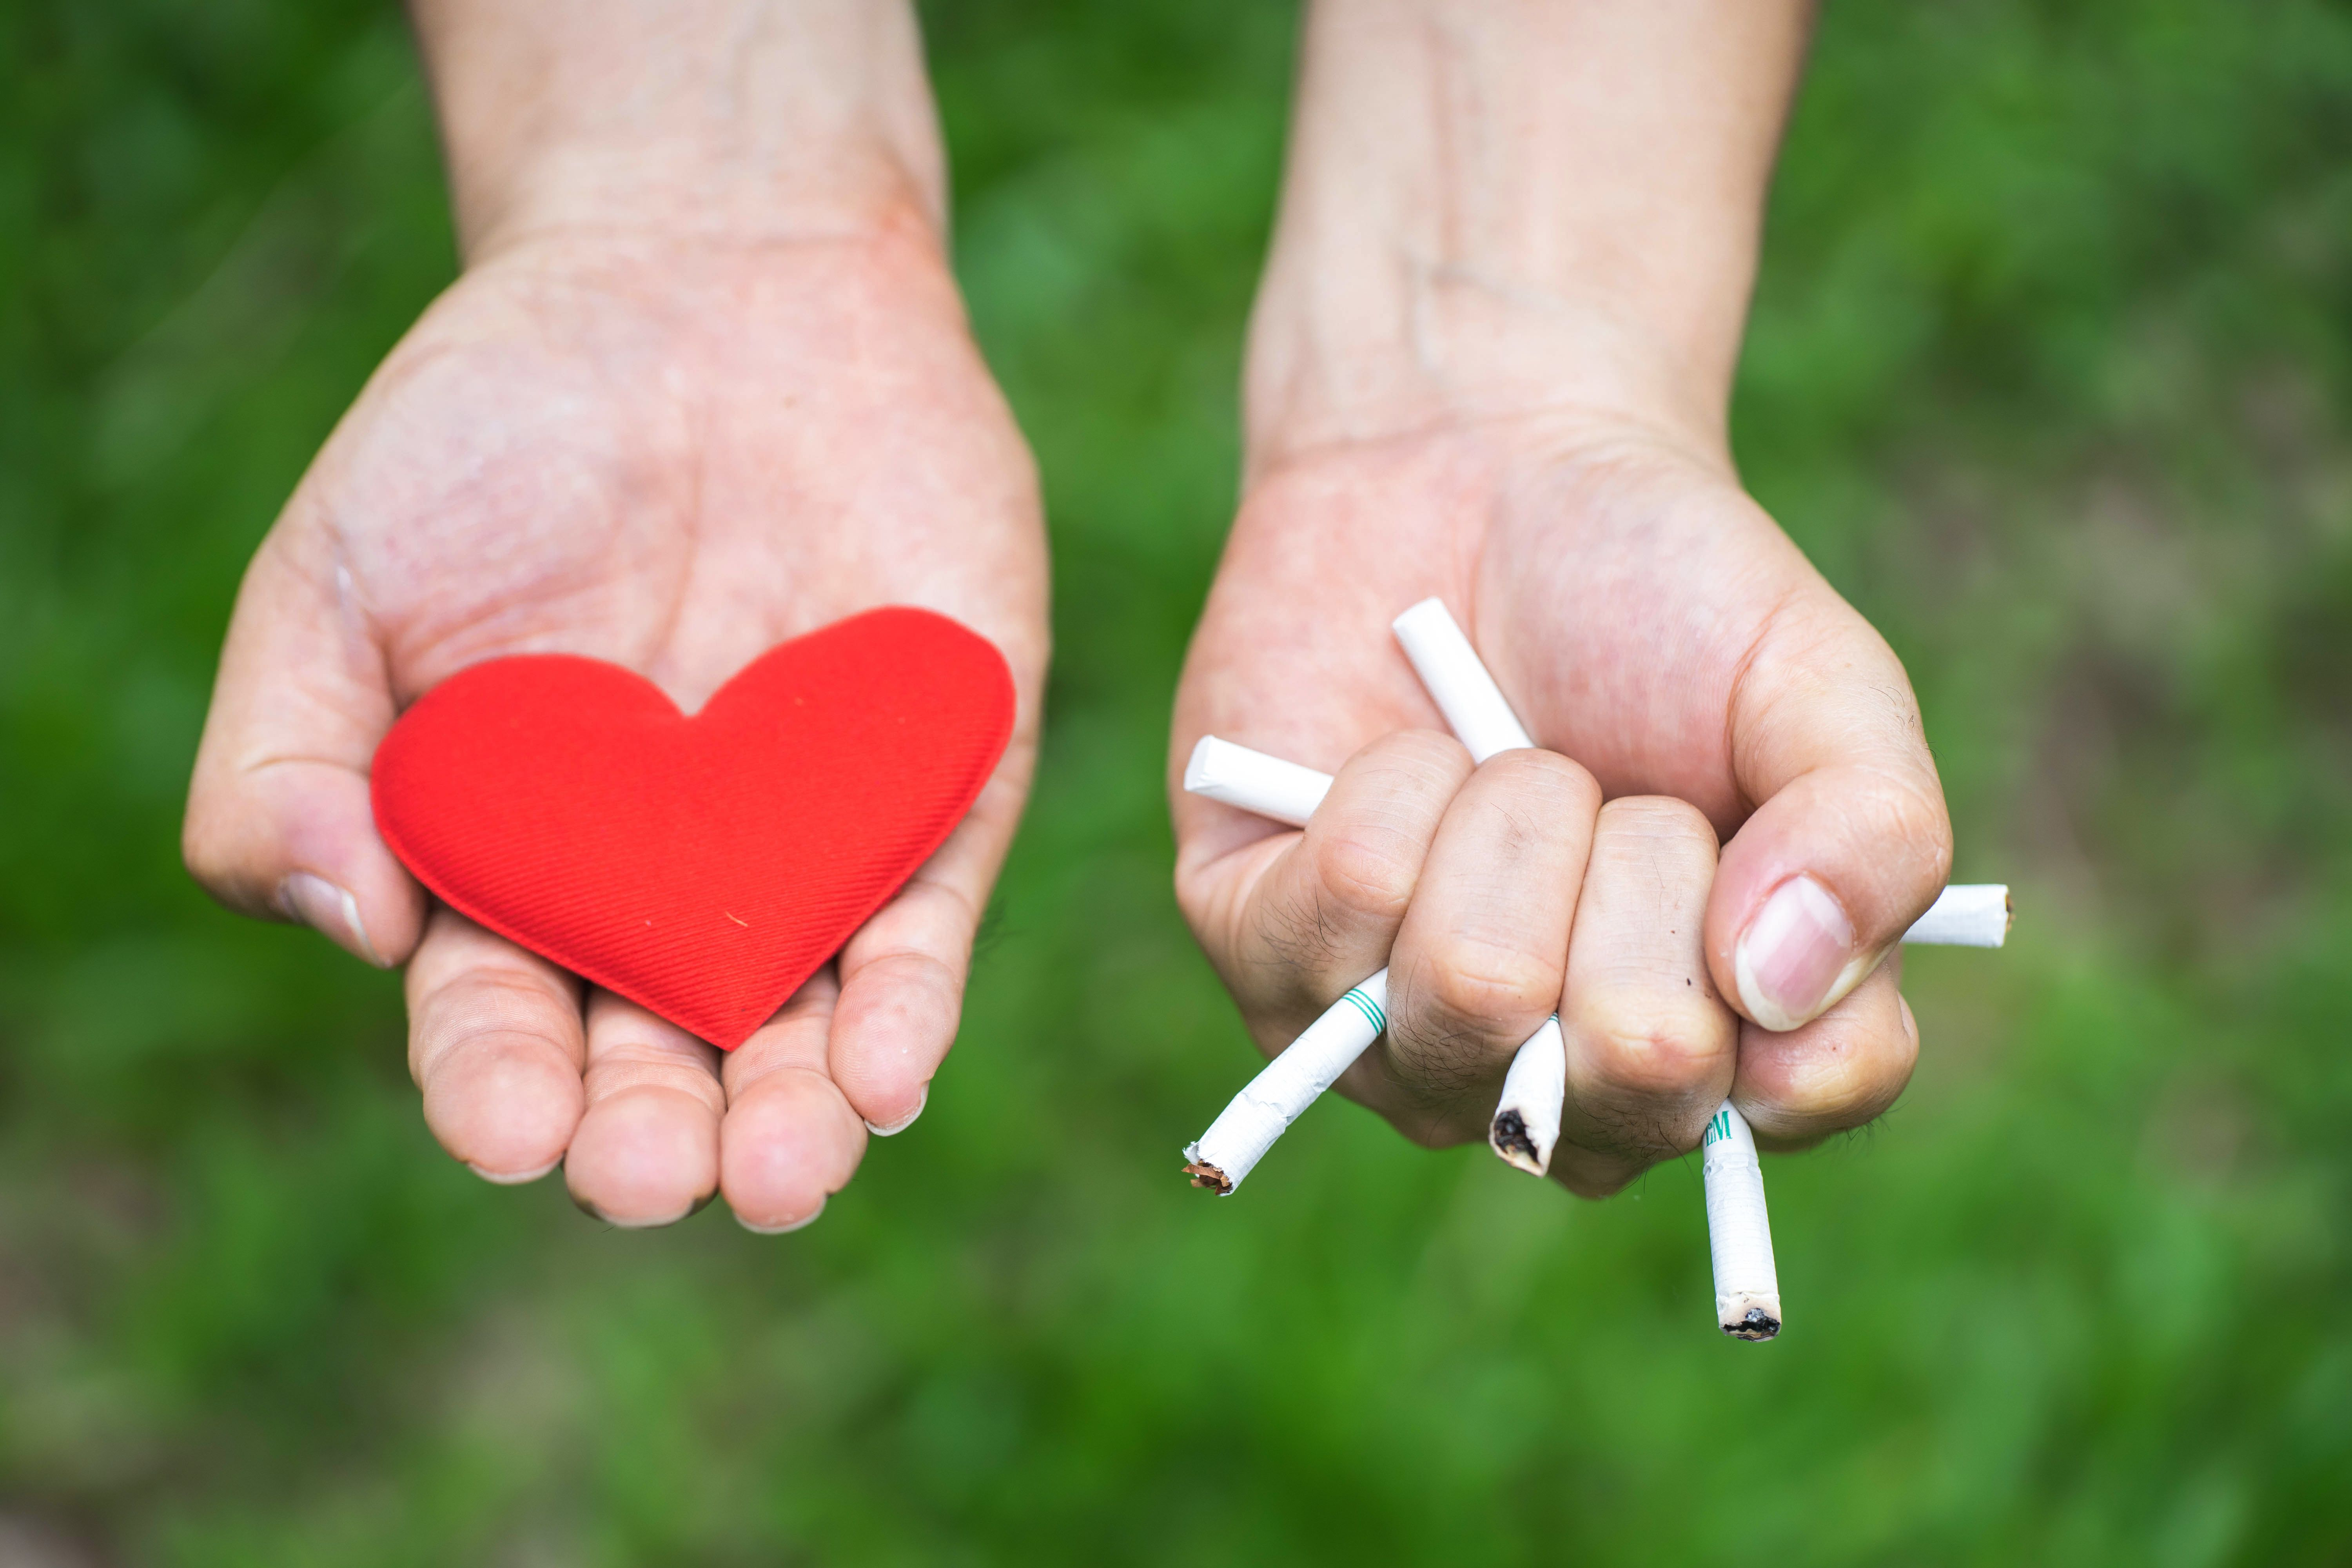 Man holding a heart in one hand and crushing cigarettes in the other